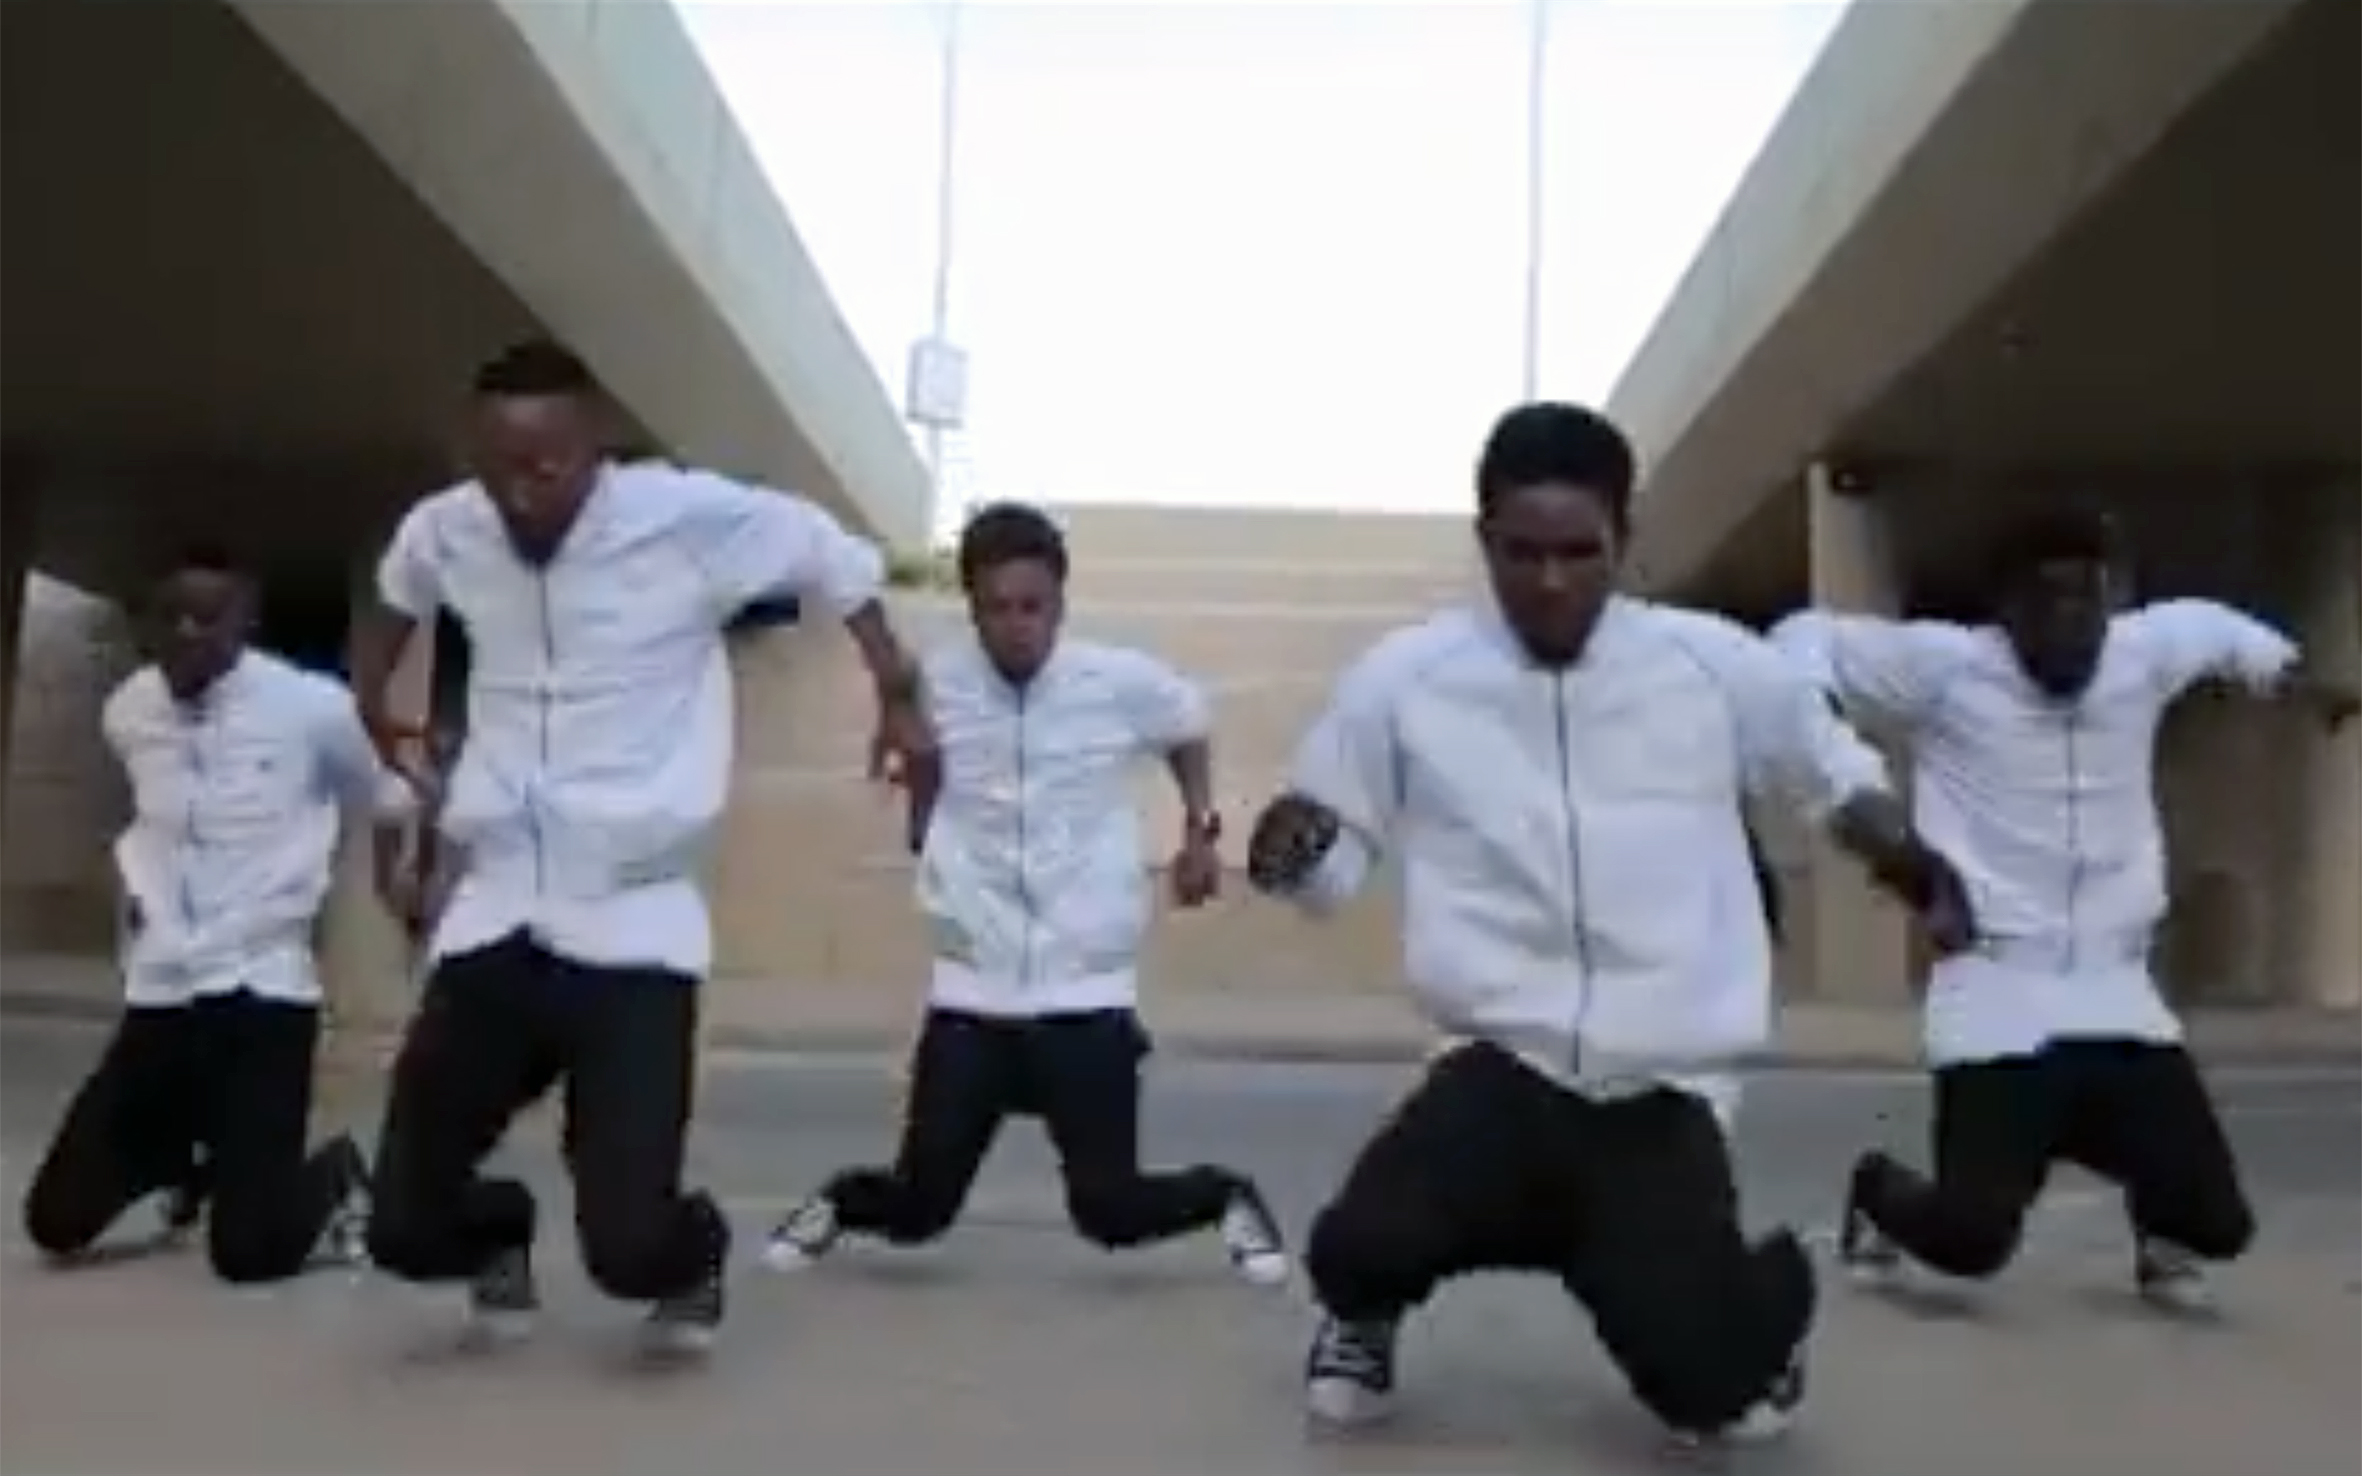 12.AFRO DANCE / Global - AFRO DANCE is a mixture of Sub-Saharan African dance moves with contemporary pop, rap and trap movements. It often has strong presence in European countries with many African immigrants, especially France and French-speaking places, and the Netherlands, as well as the UK.